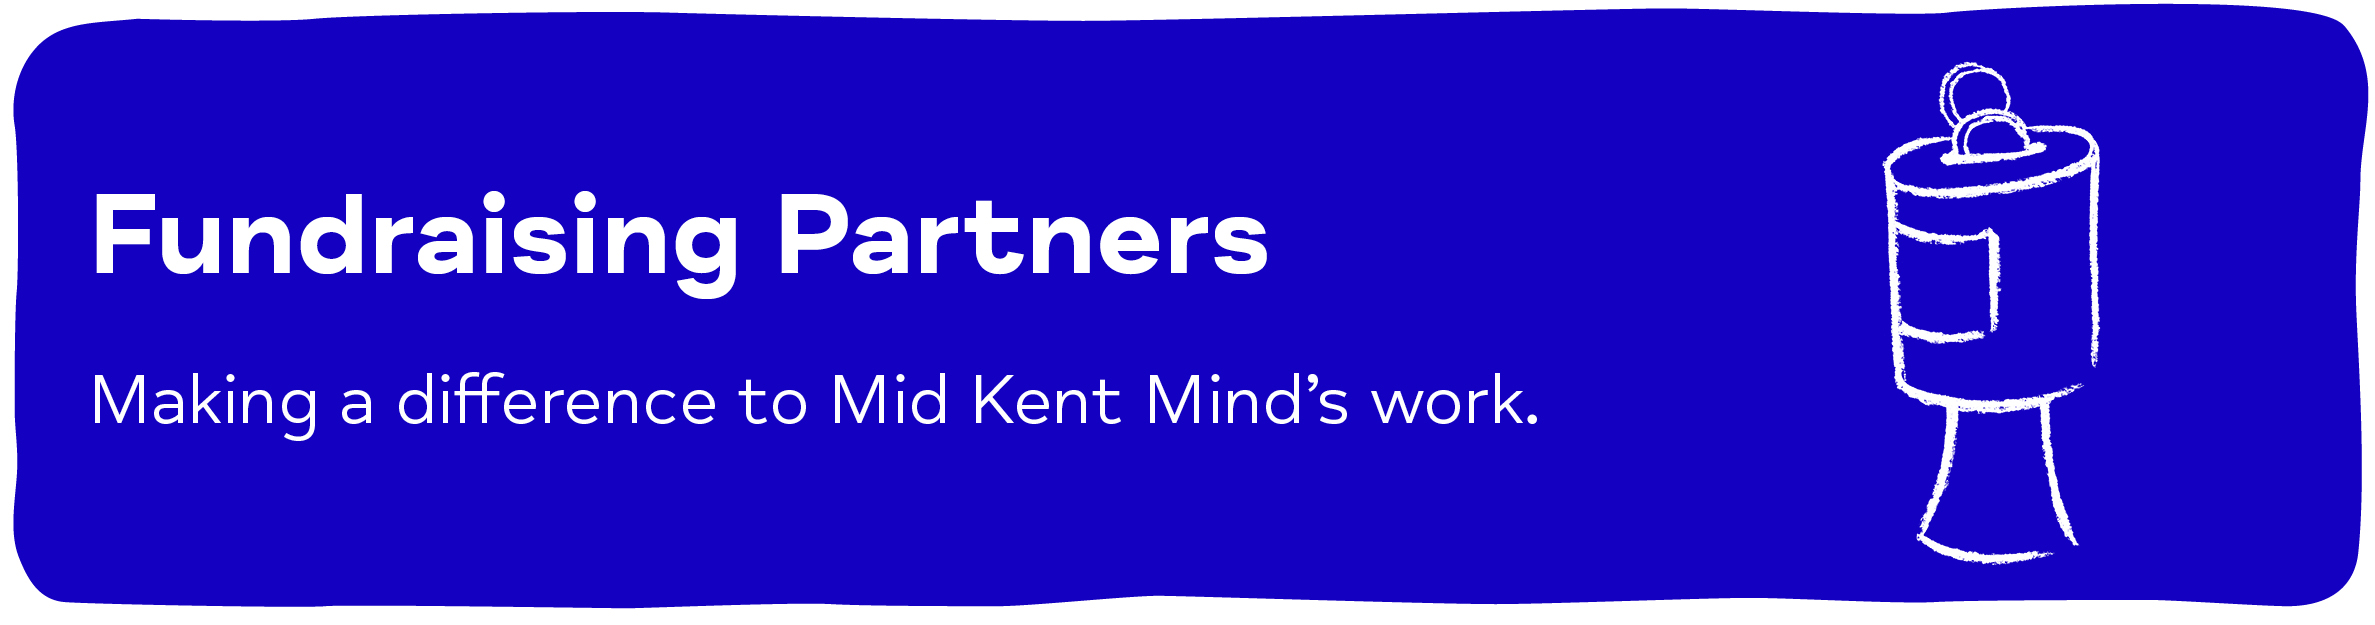 Fundraising Partners - Making a difference to Mid Kent Mind's work.